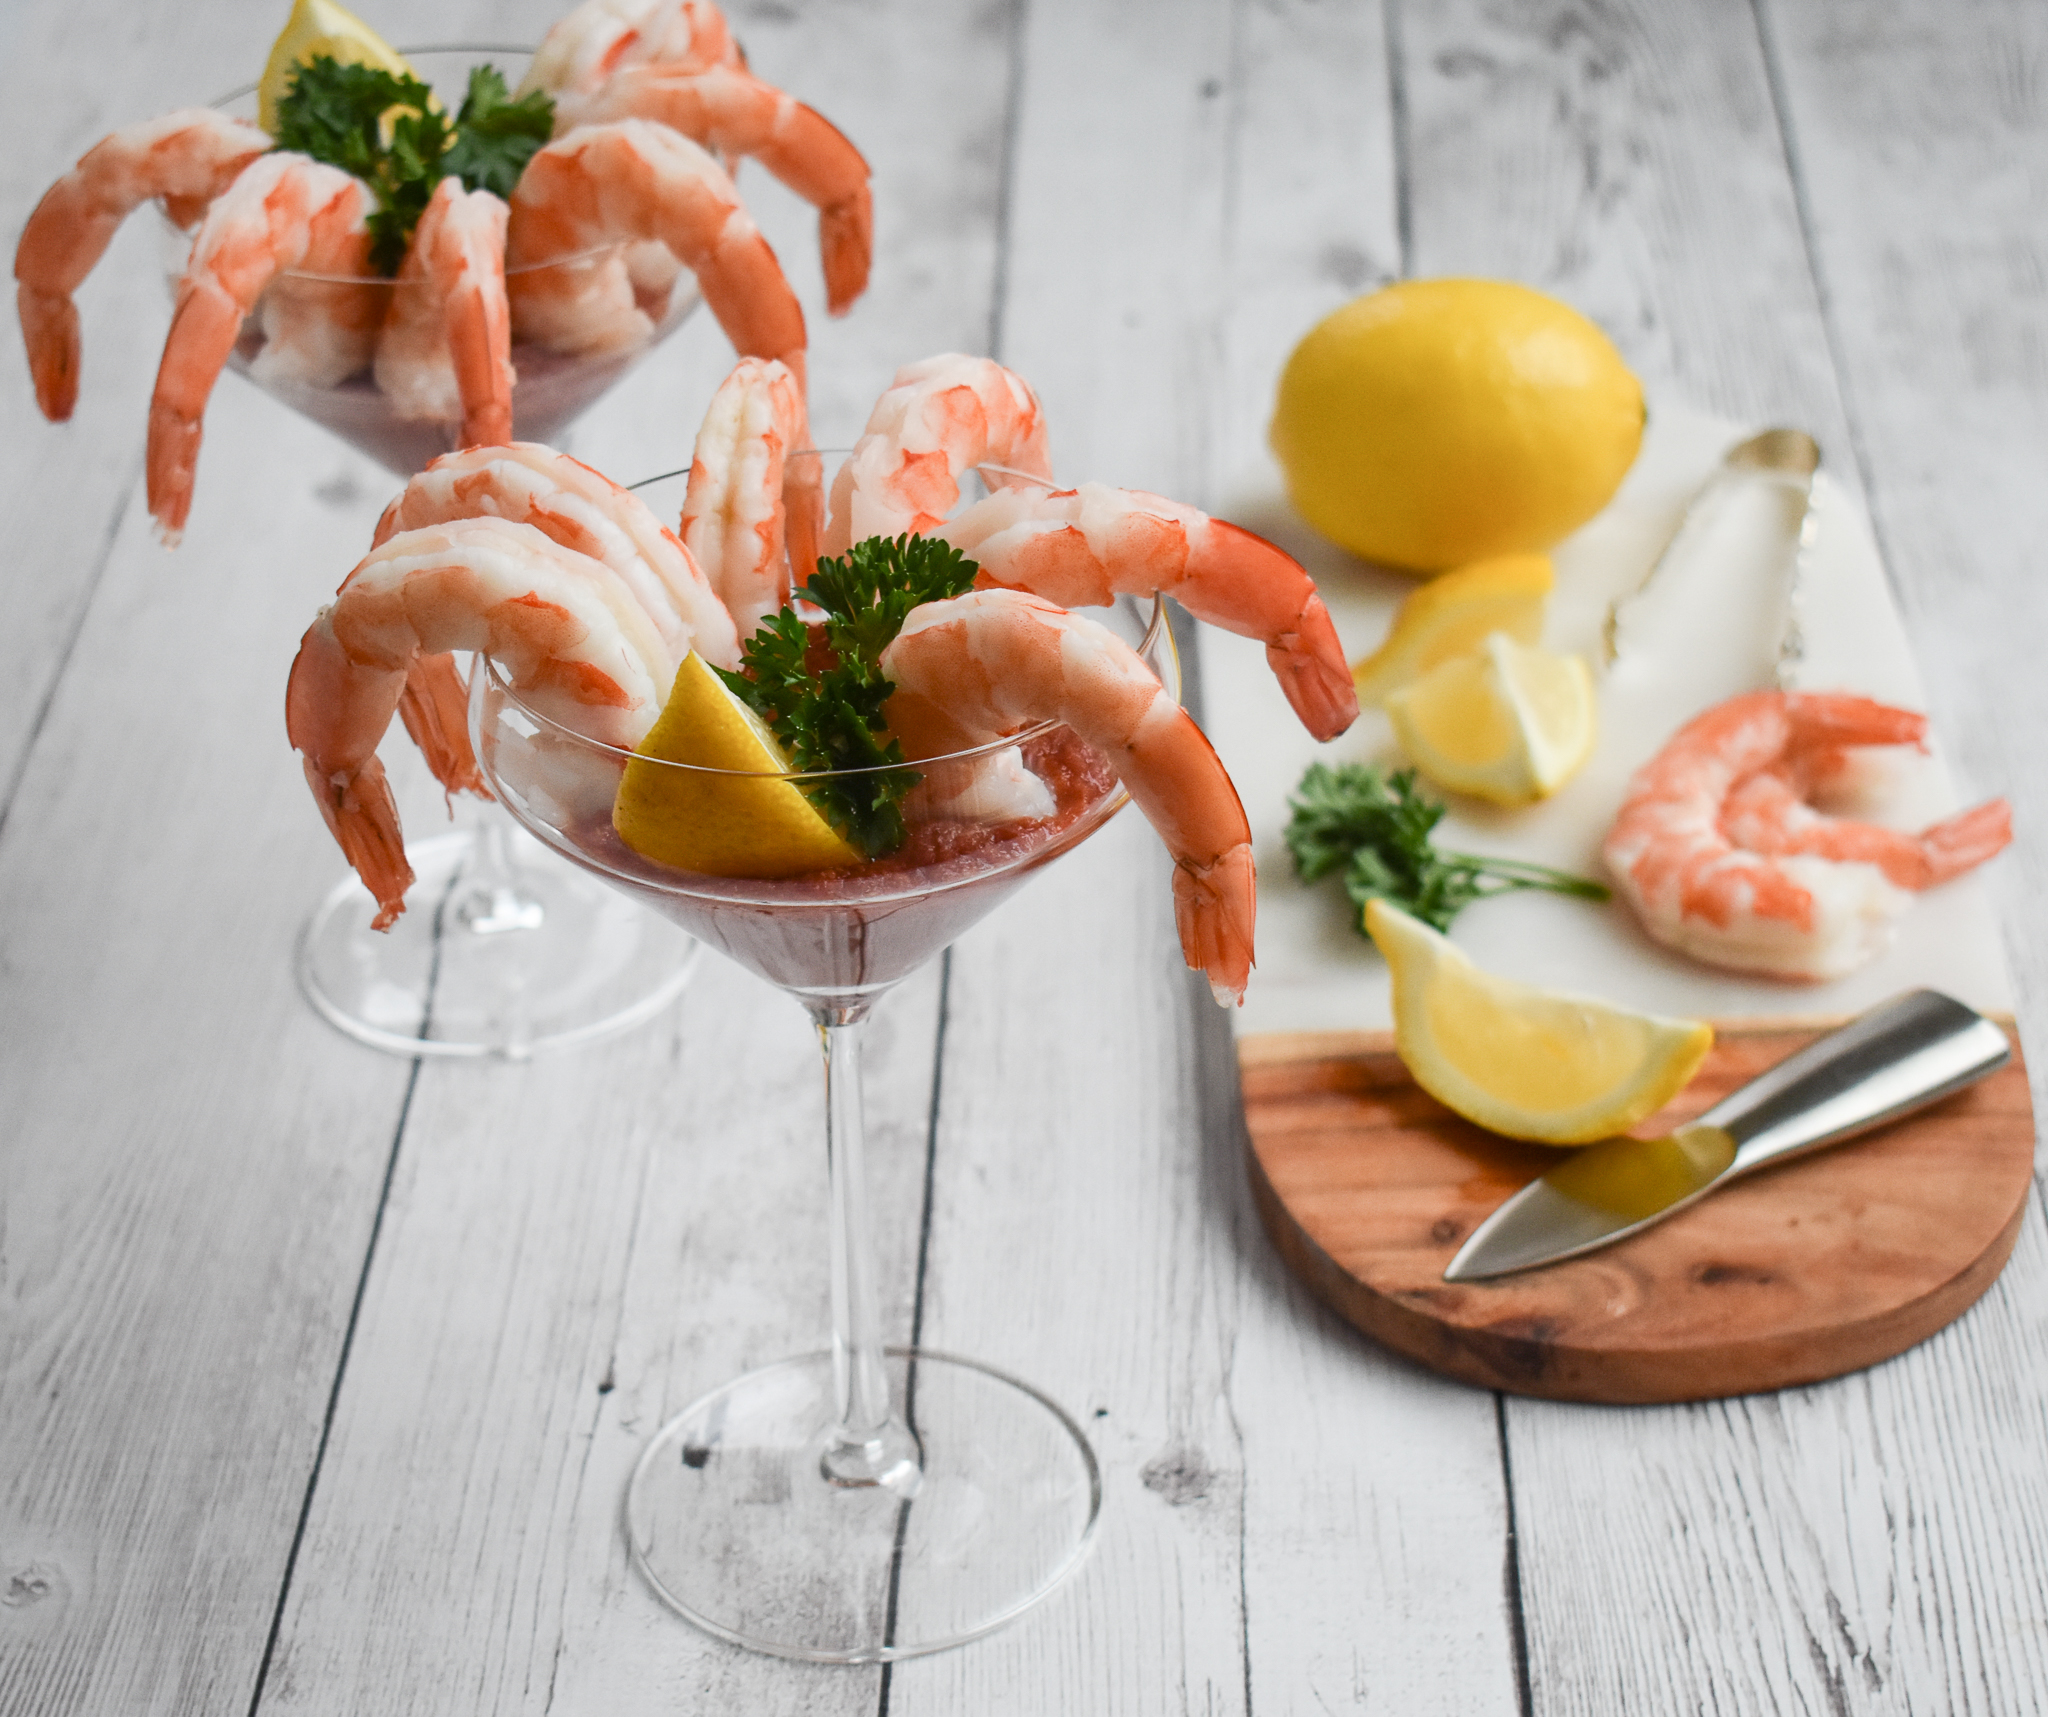 Low Fodmap Shrimp Cocktail Sauce Seafood Dipping Sauce Gluten Free Vegan Rachel Pauls Food